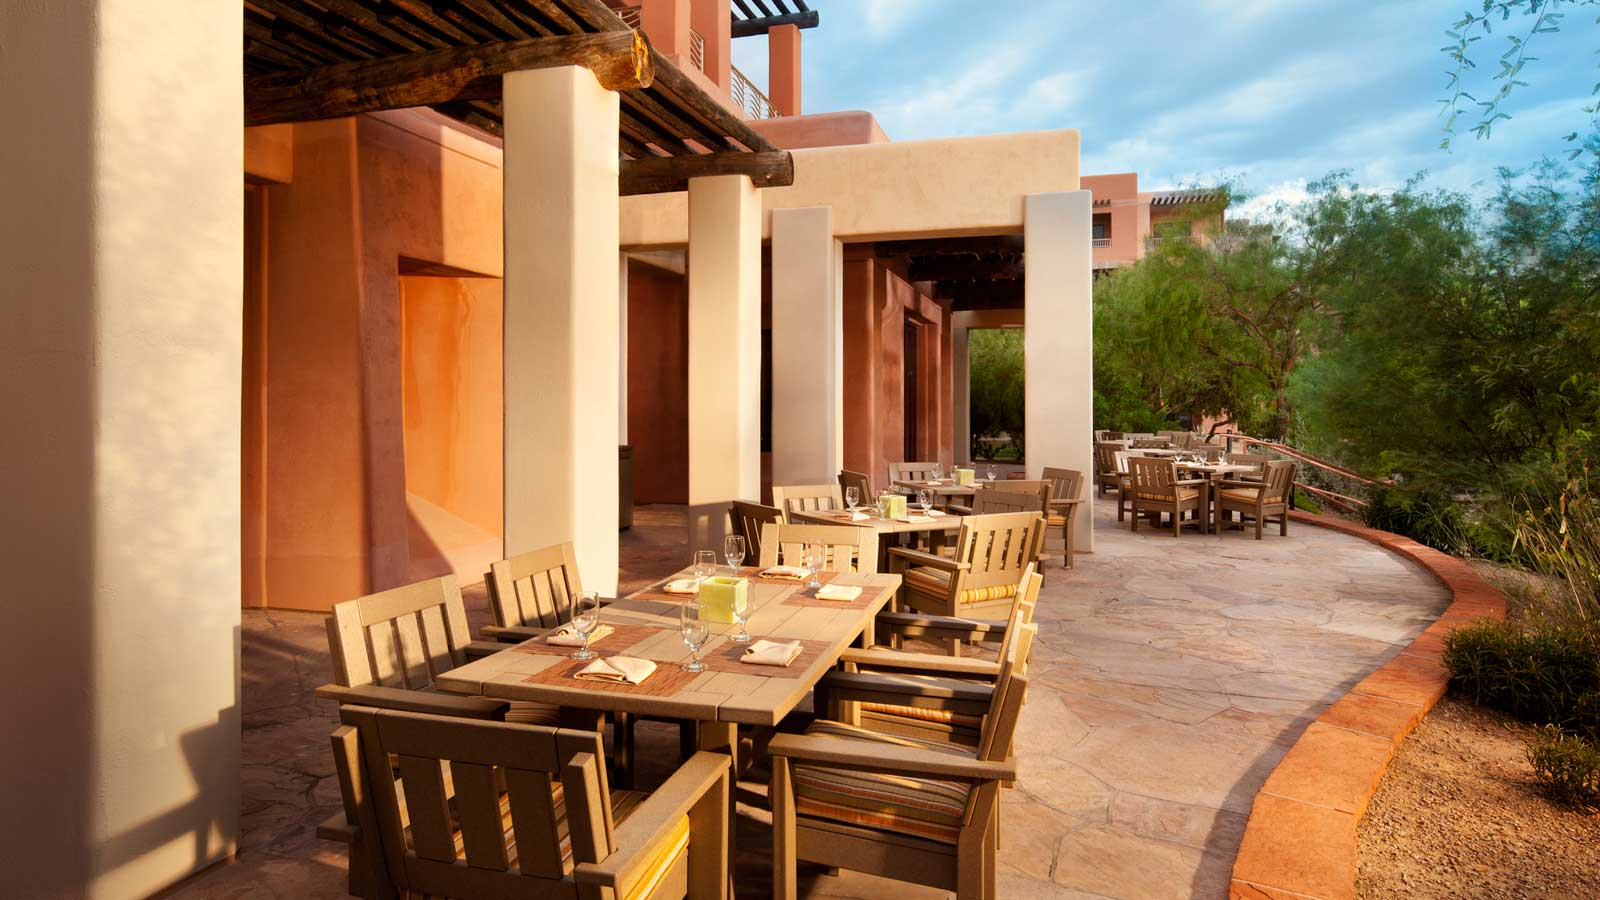 Phoenix Resort Wedding Venue - Outdoor patio